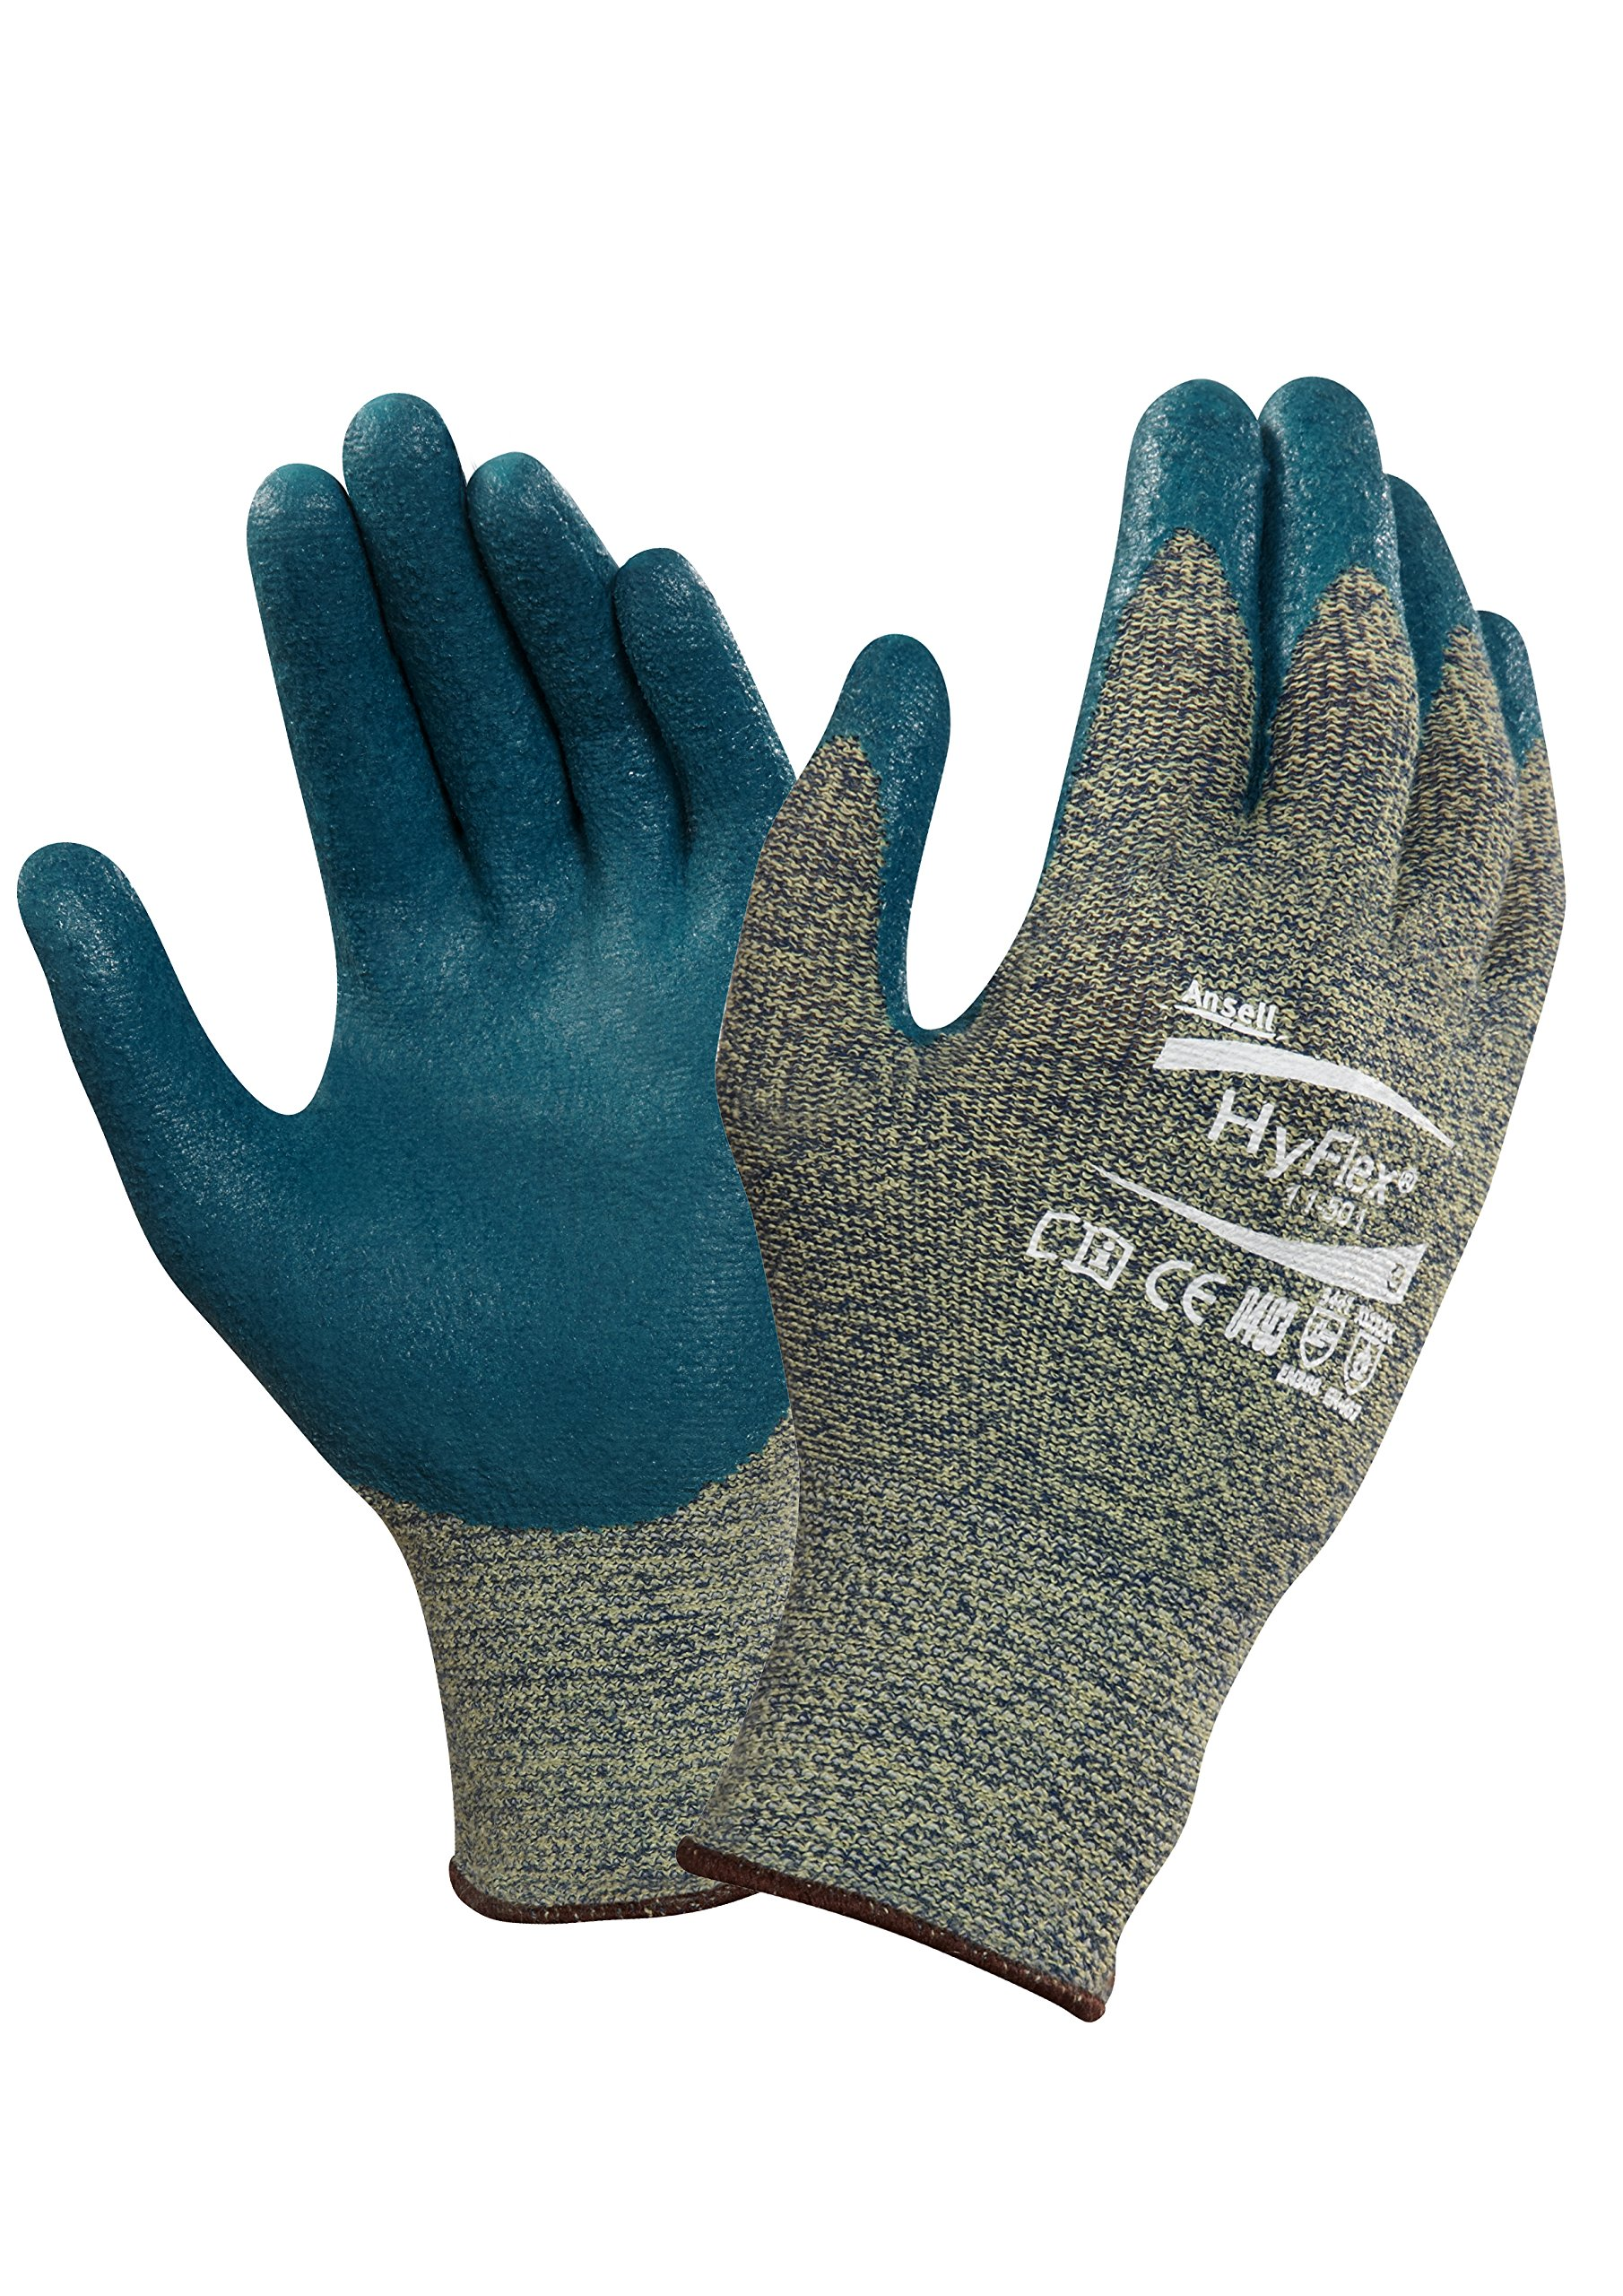 Ansell 103368 HyFlex 11-501 Nitrile Foam Coated Stretch Lined Gloves, 0.33'' Height, 11'' Length, 5'' Wide, Size 10, Blue/Gray (Pack of 12) by Ansell (Image #1)